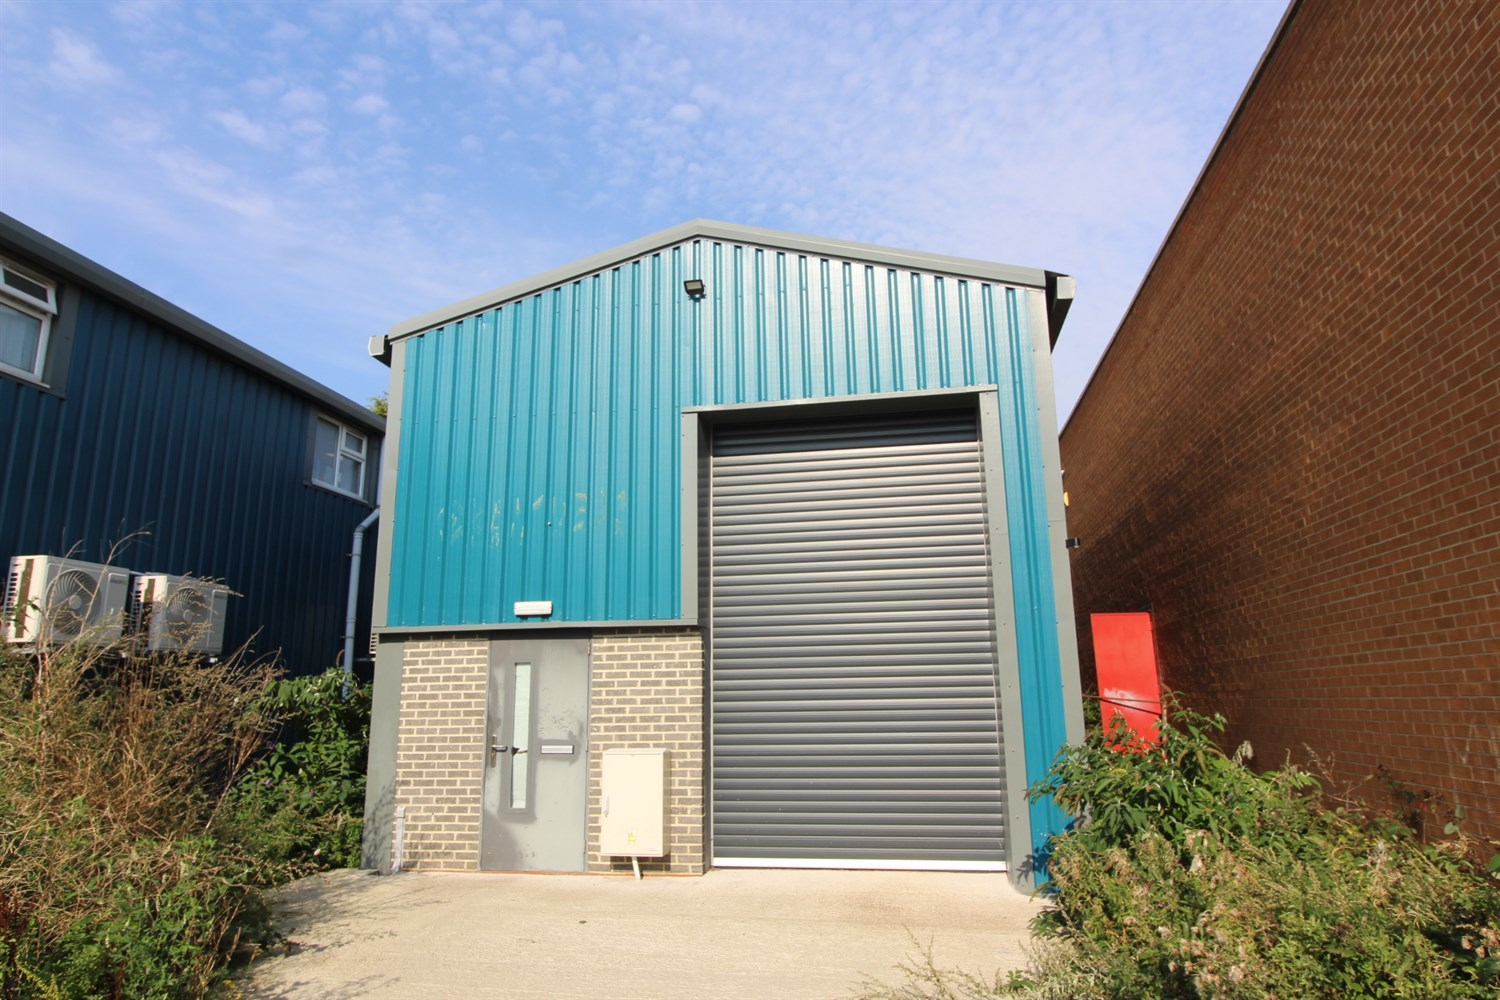 Skippers Lane Industrial Estate, TS6